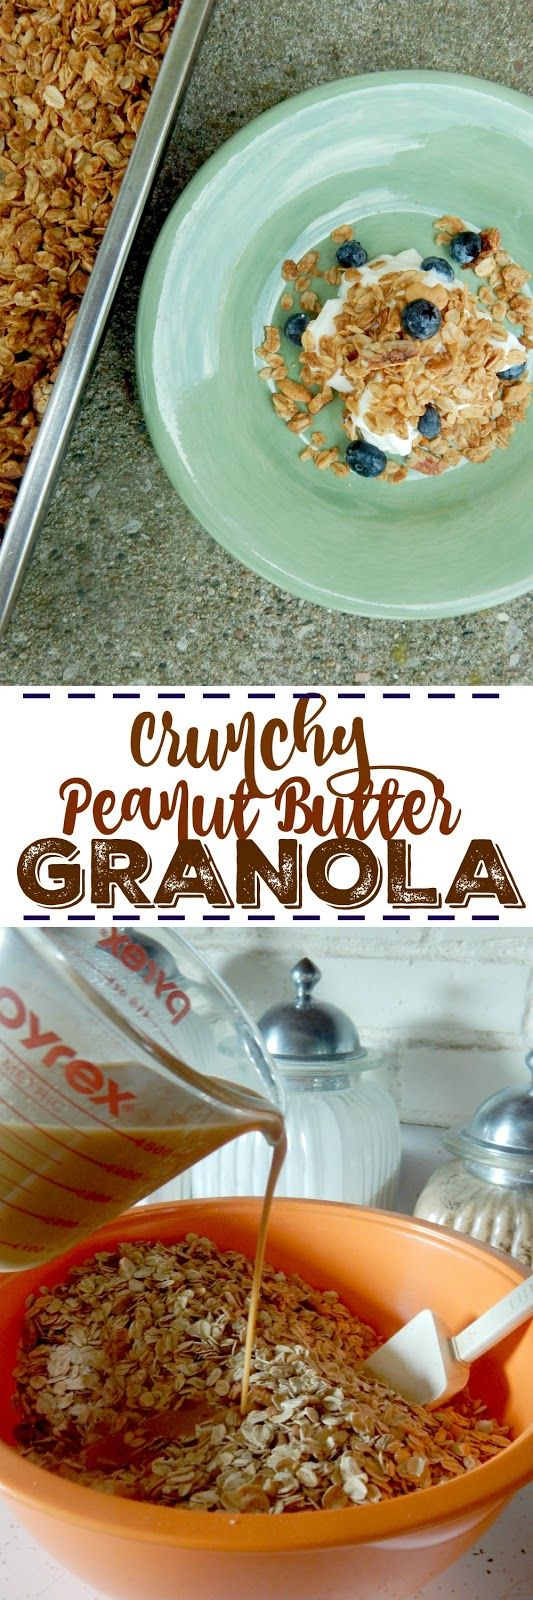 Crunchy Peanut Butter Granola...hey peanut butter lovers this one is for you!  Chopped pecans and cashews plus melted peanut butter make this granola incredible!